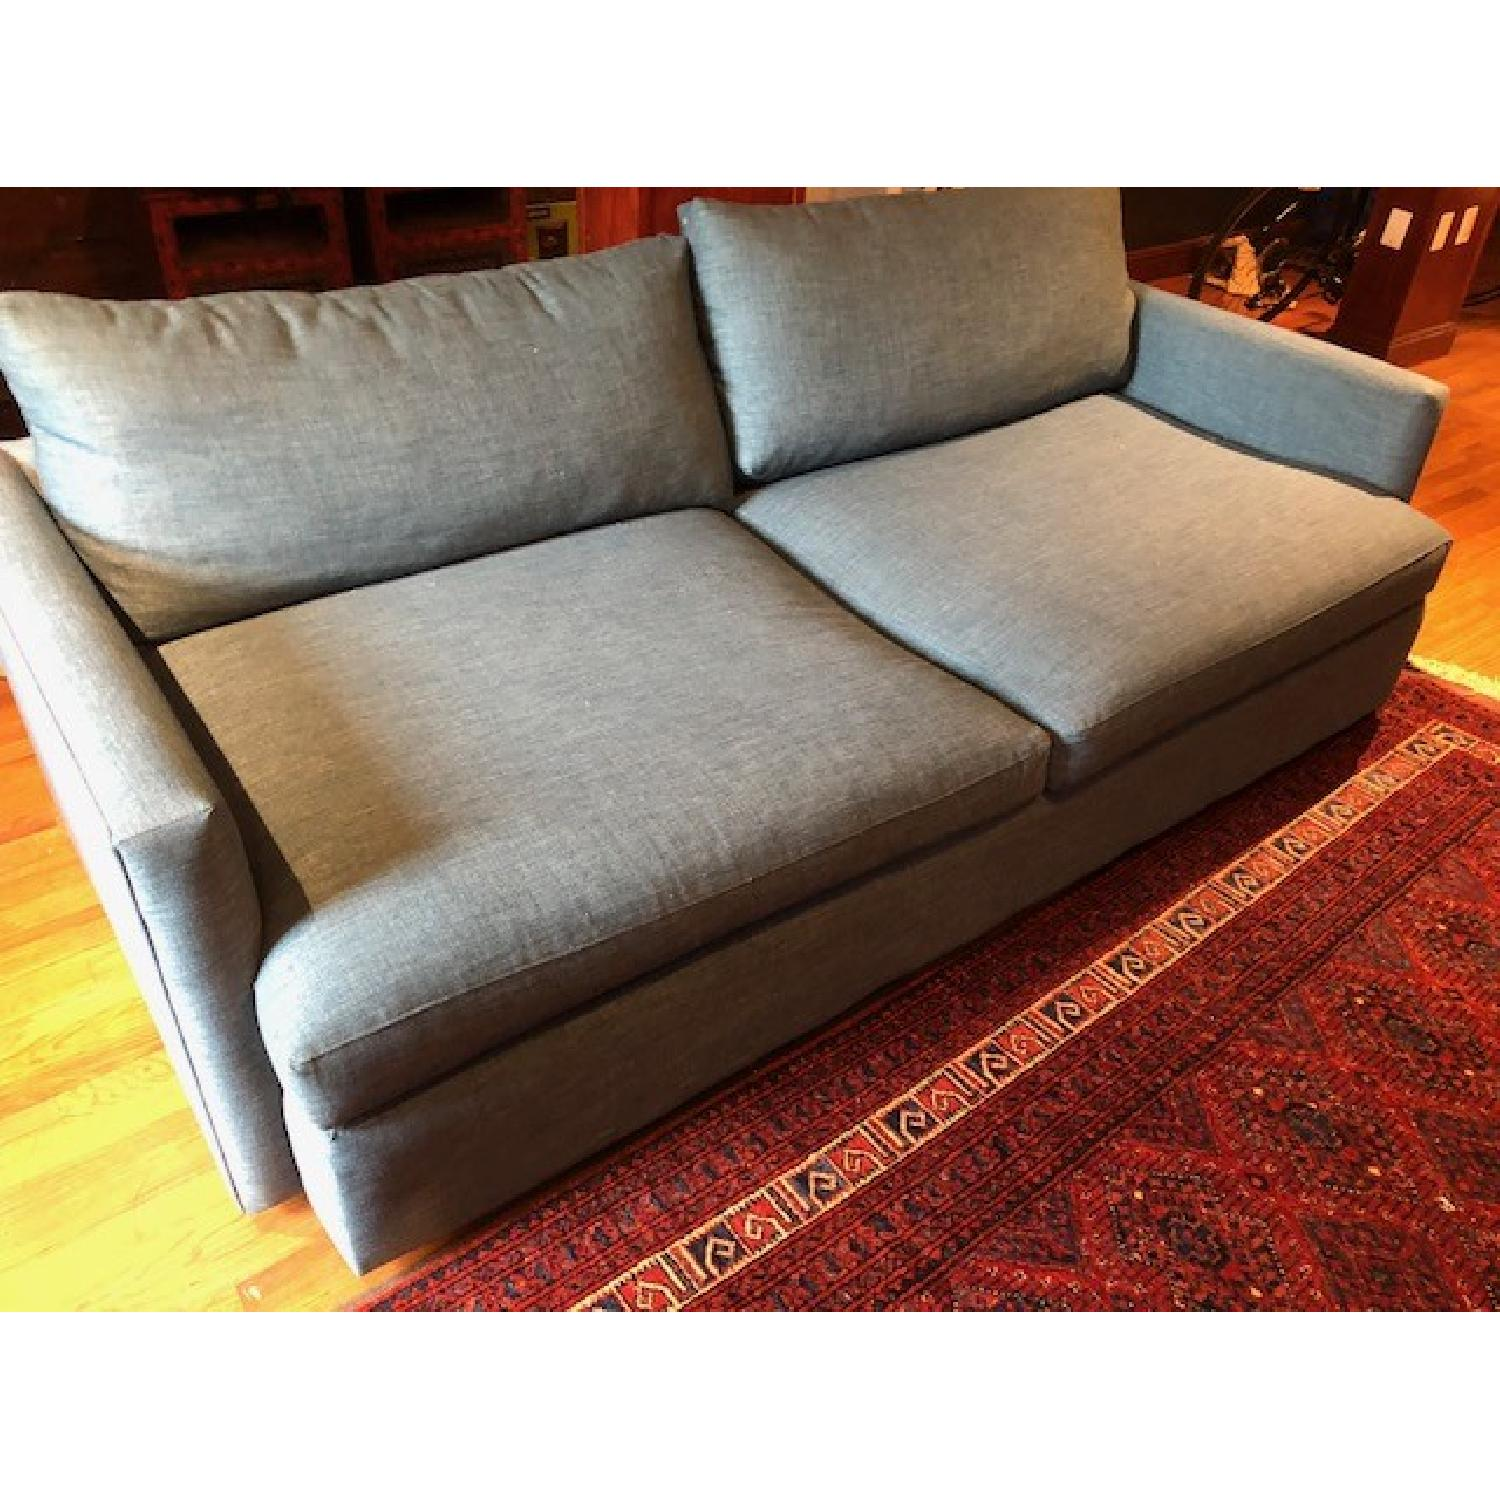 Crate & Barrel Lounge II Apartment Sofa & Ottoman-4